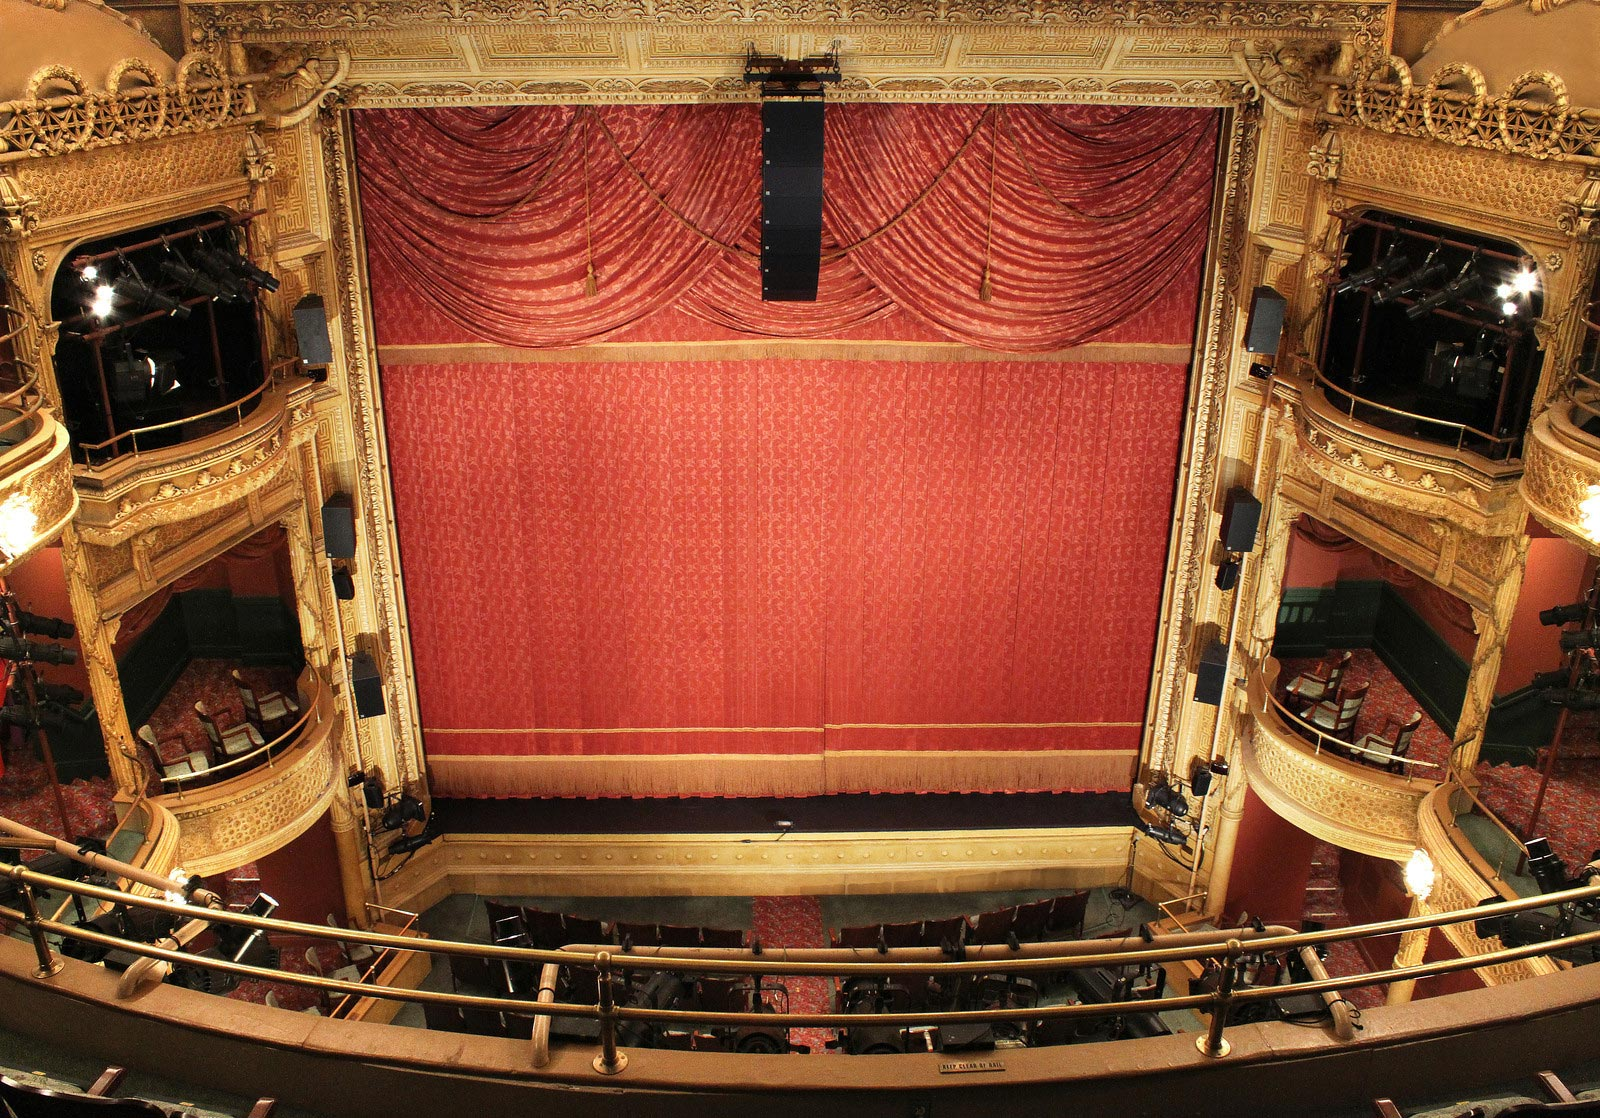 View from the balcony of the New Victory Theatre. Credit: New 42nd Street.